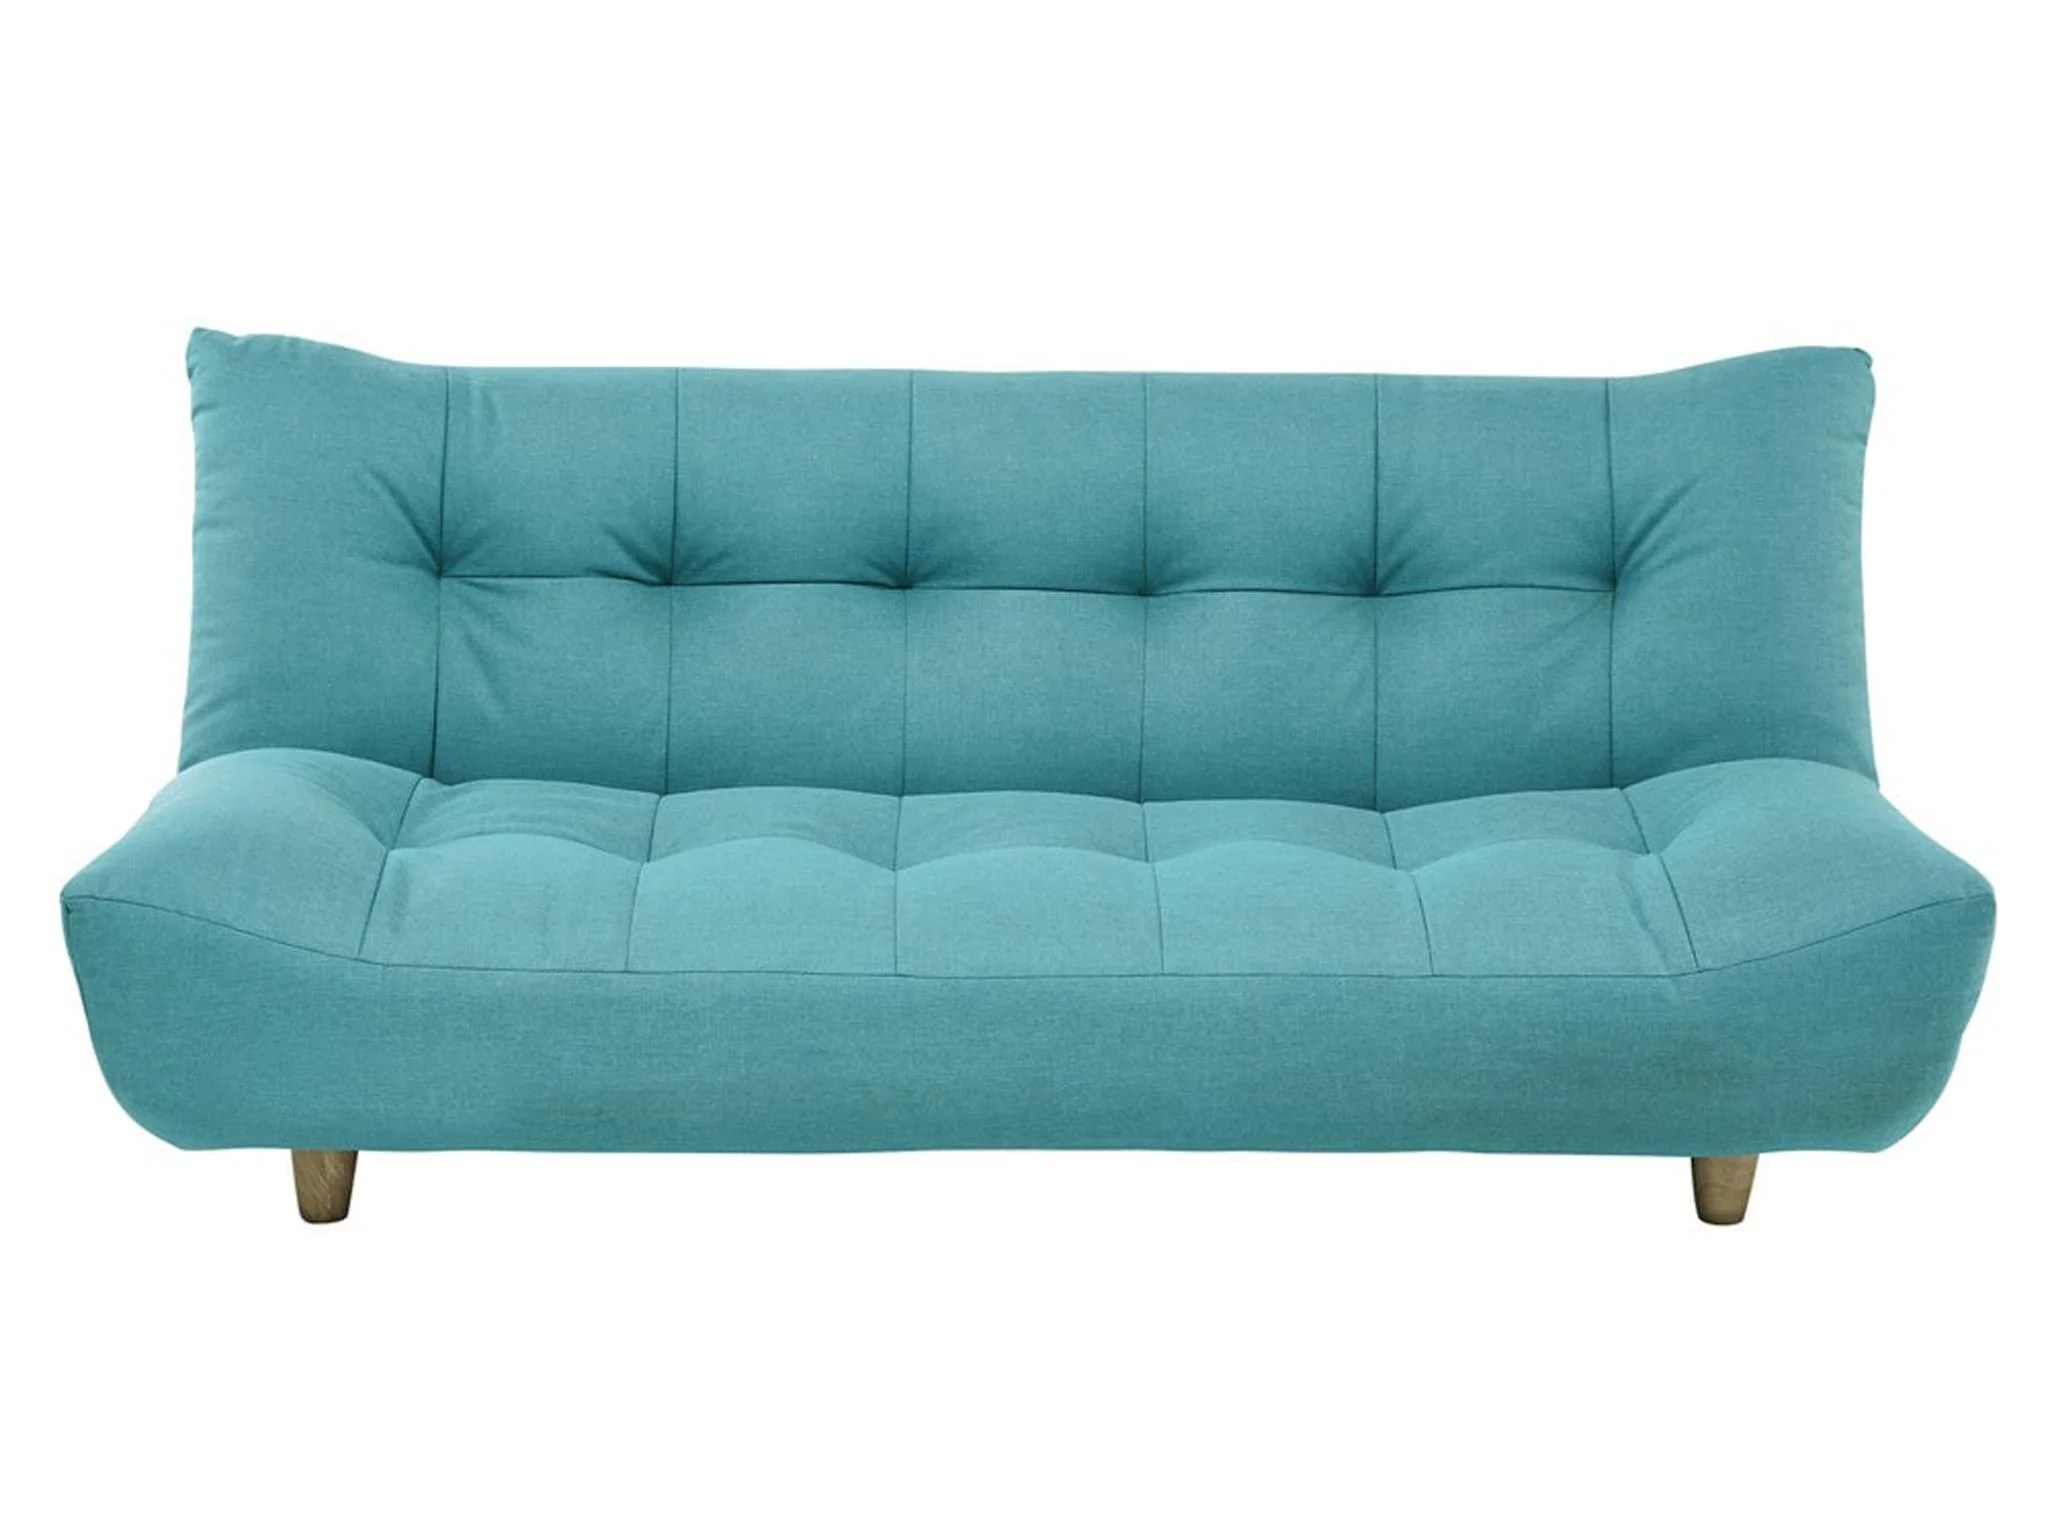 corner sofa bed west london single chair australia 12 best beds the independent cloud 3 seater clic clac 314 maisons du monde